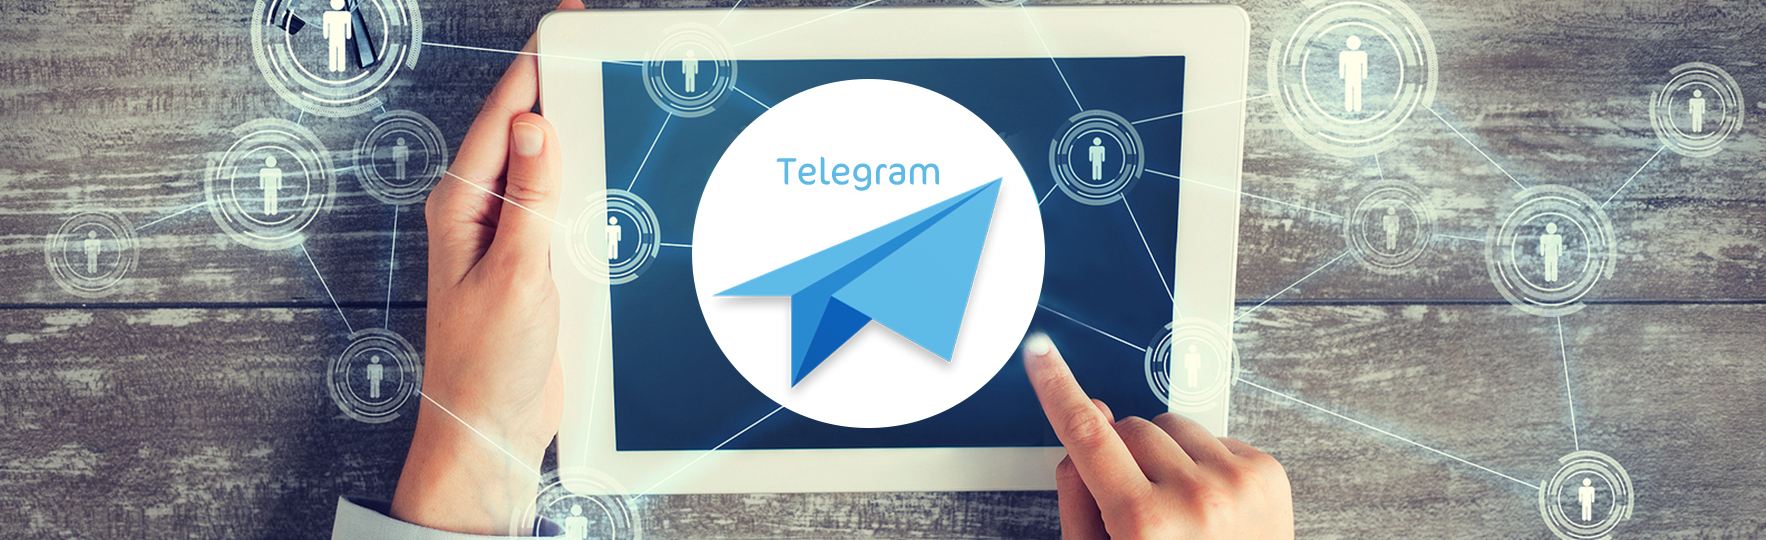 Telegram-Social-Marketing-1766x540